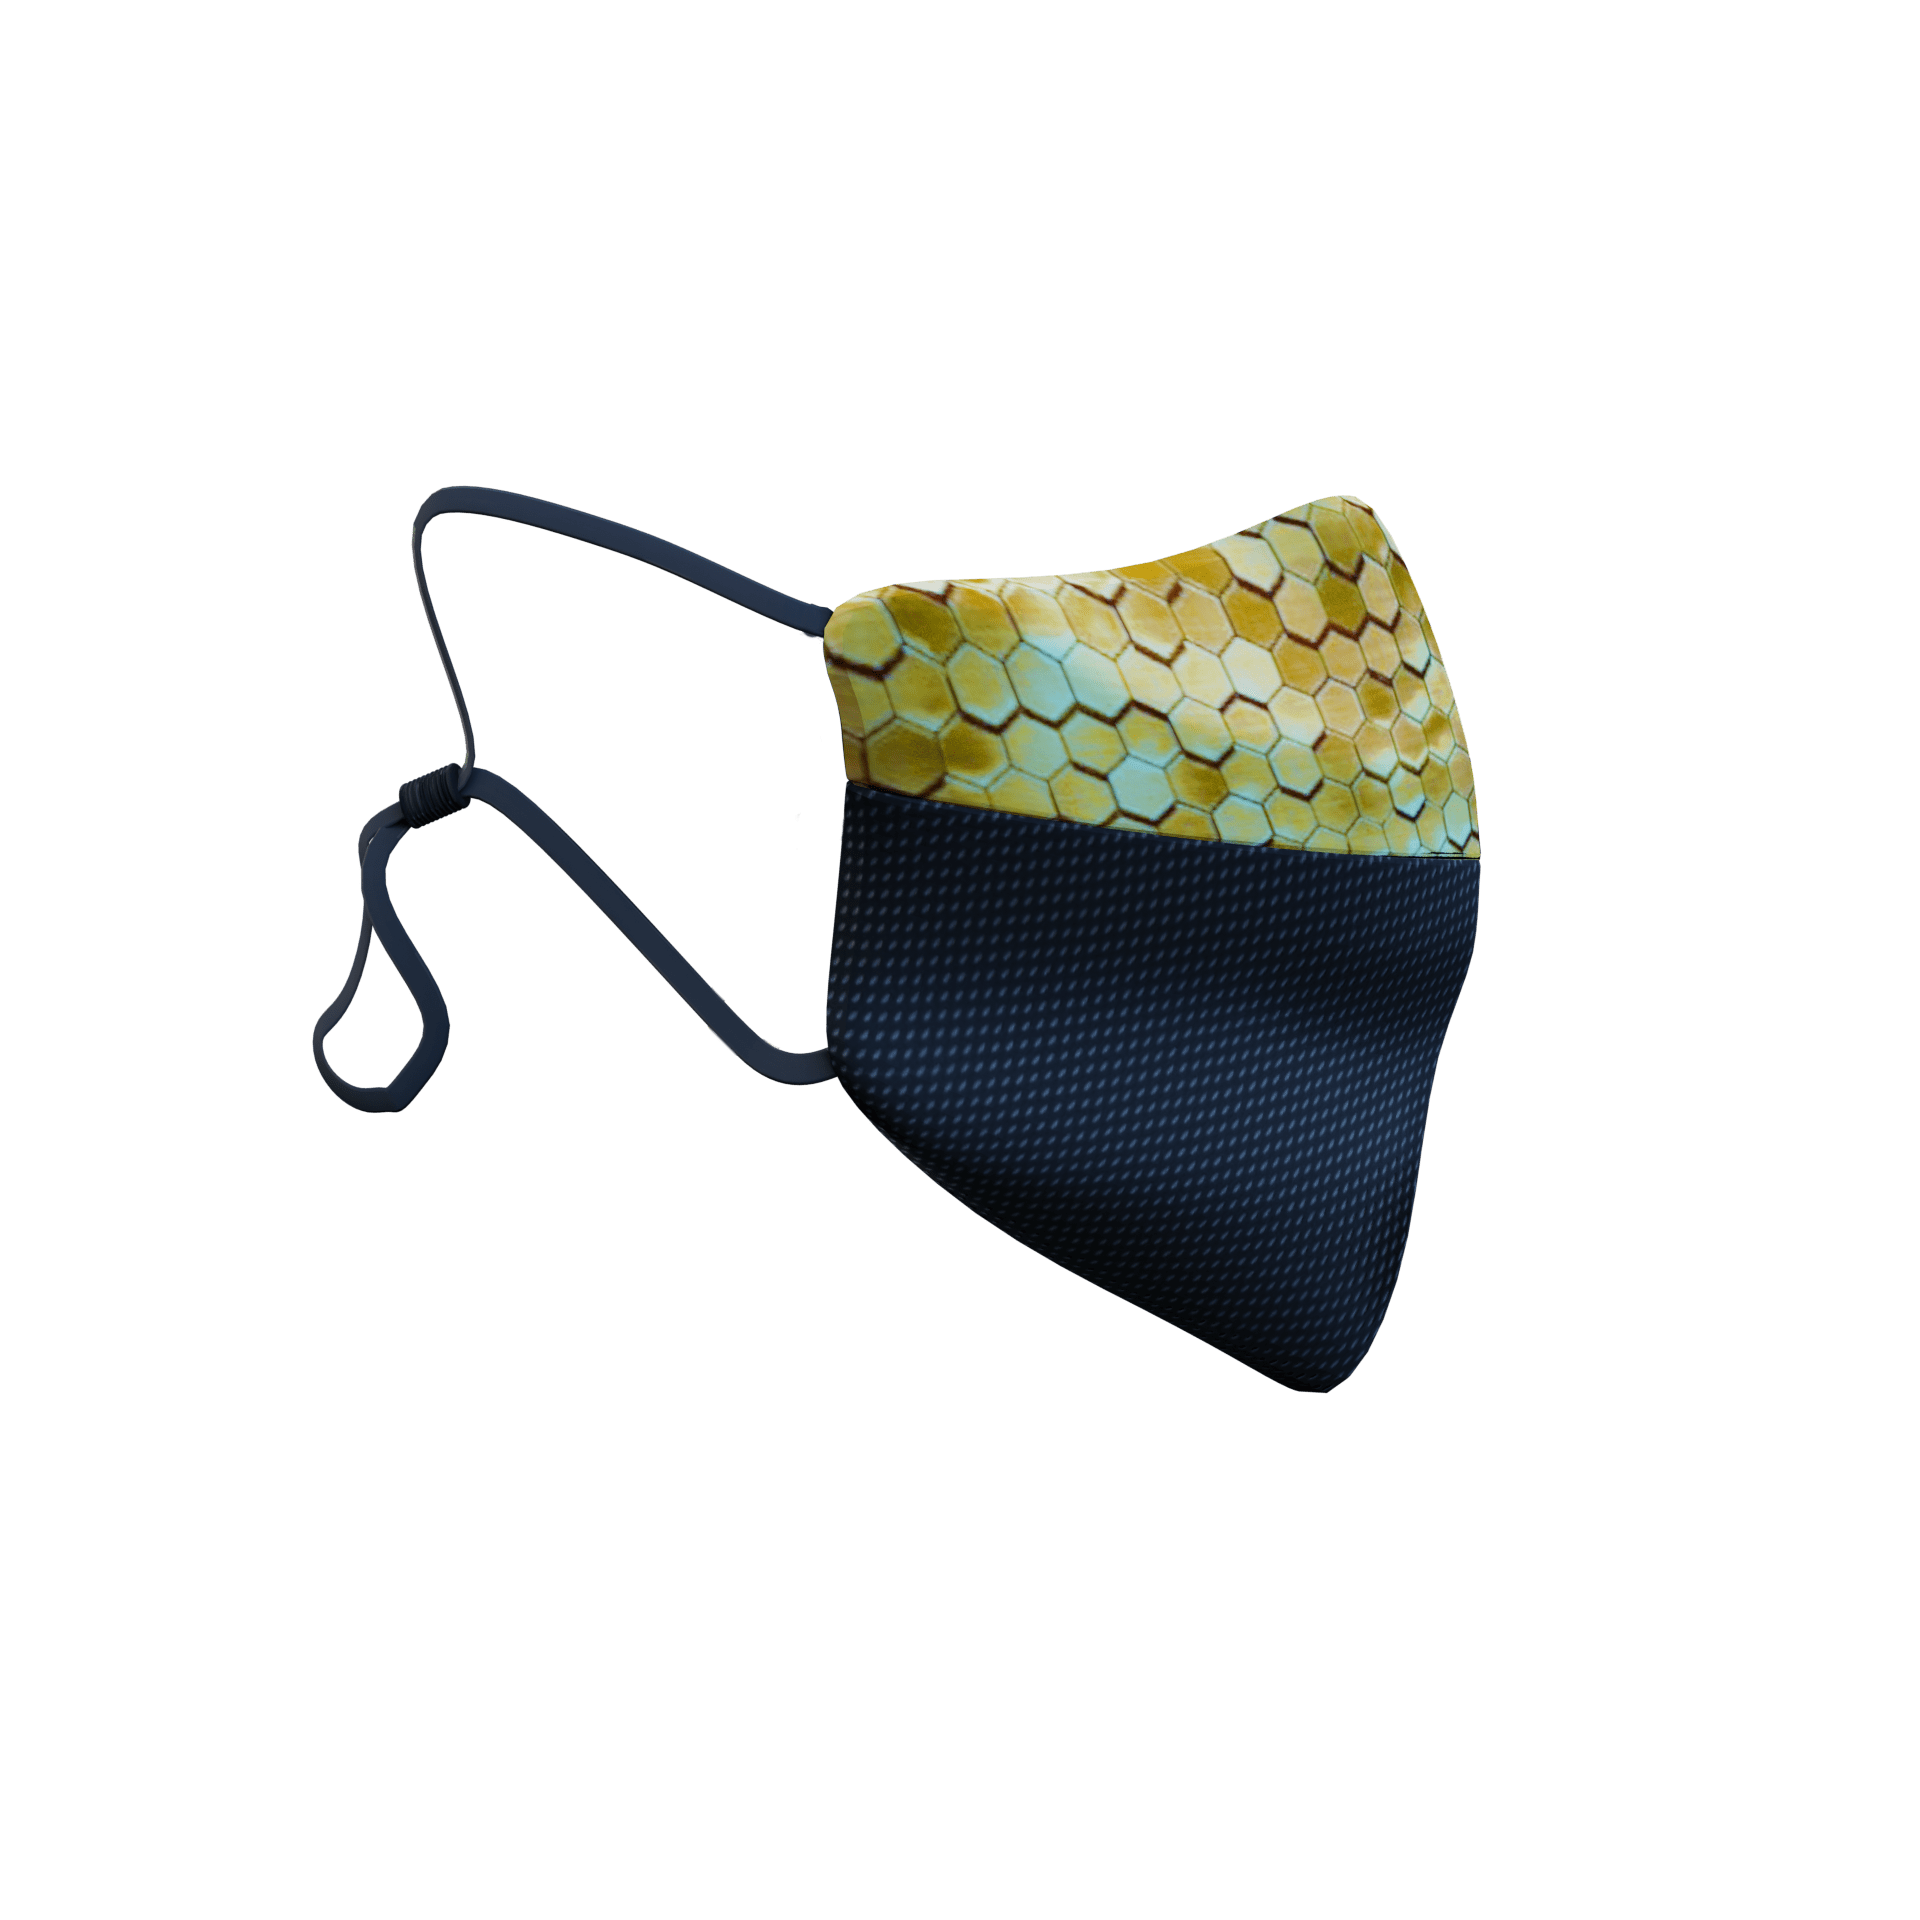 MisfitMask - the facemask that wont steam up your glasses., Protective Masks - Image 28